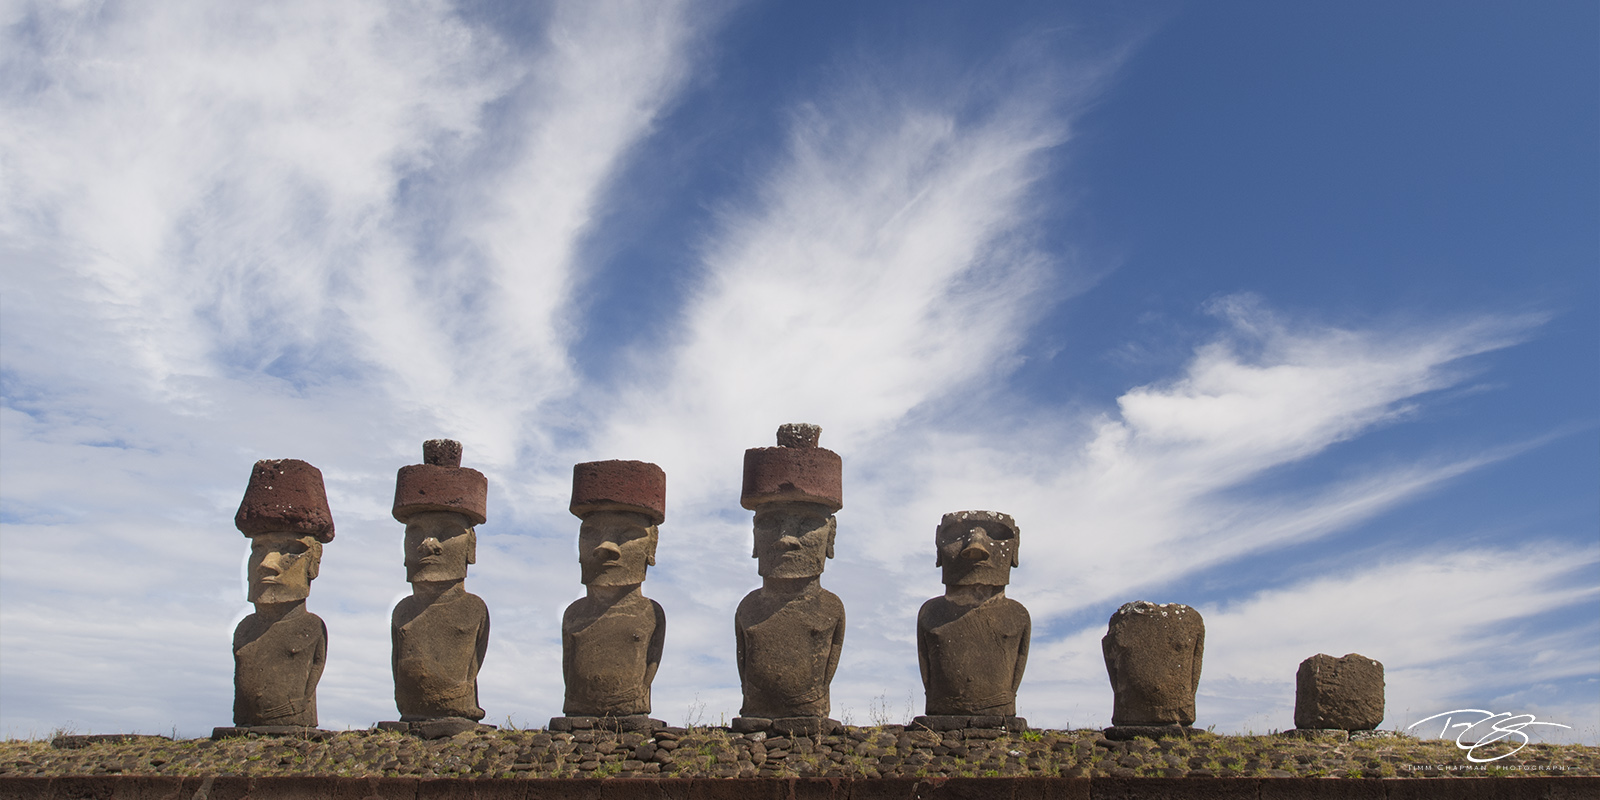 rapa nui, topknot, easter island, red scoria, clouds, whispy, ahu nau nau, isla de pascua, chile, moai, rano raraku, stone statues, giant heads, pop culture, hand carved heads, giant faces, long ears,, photo